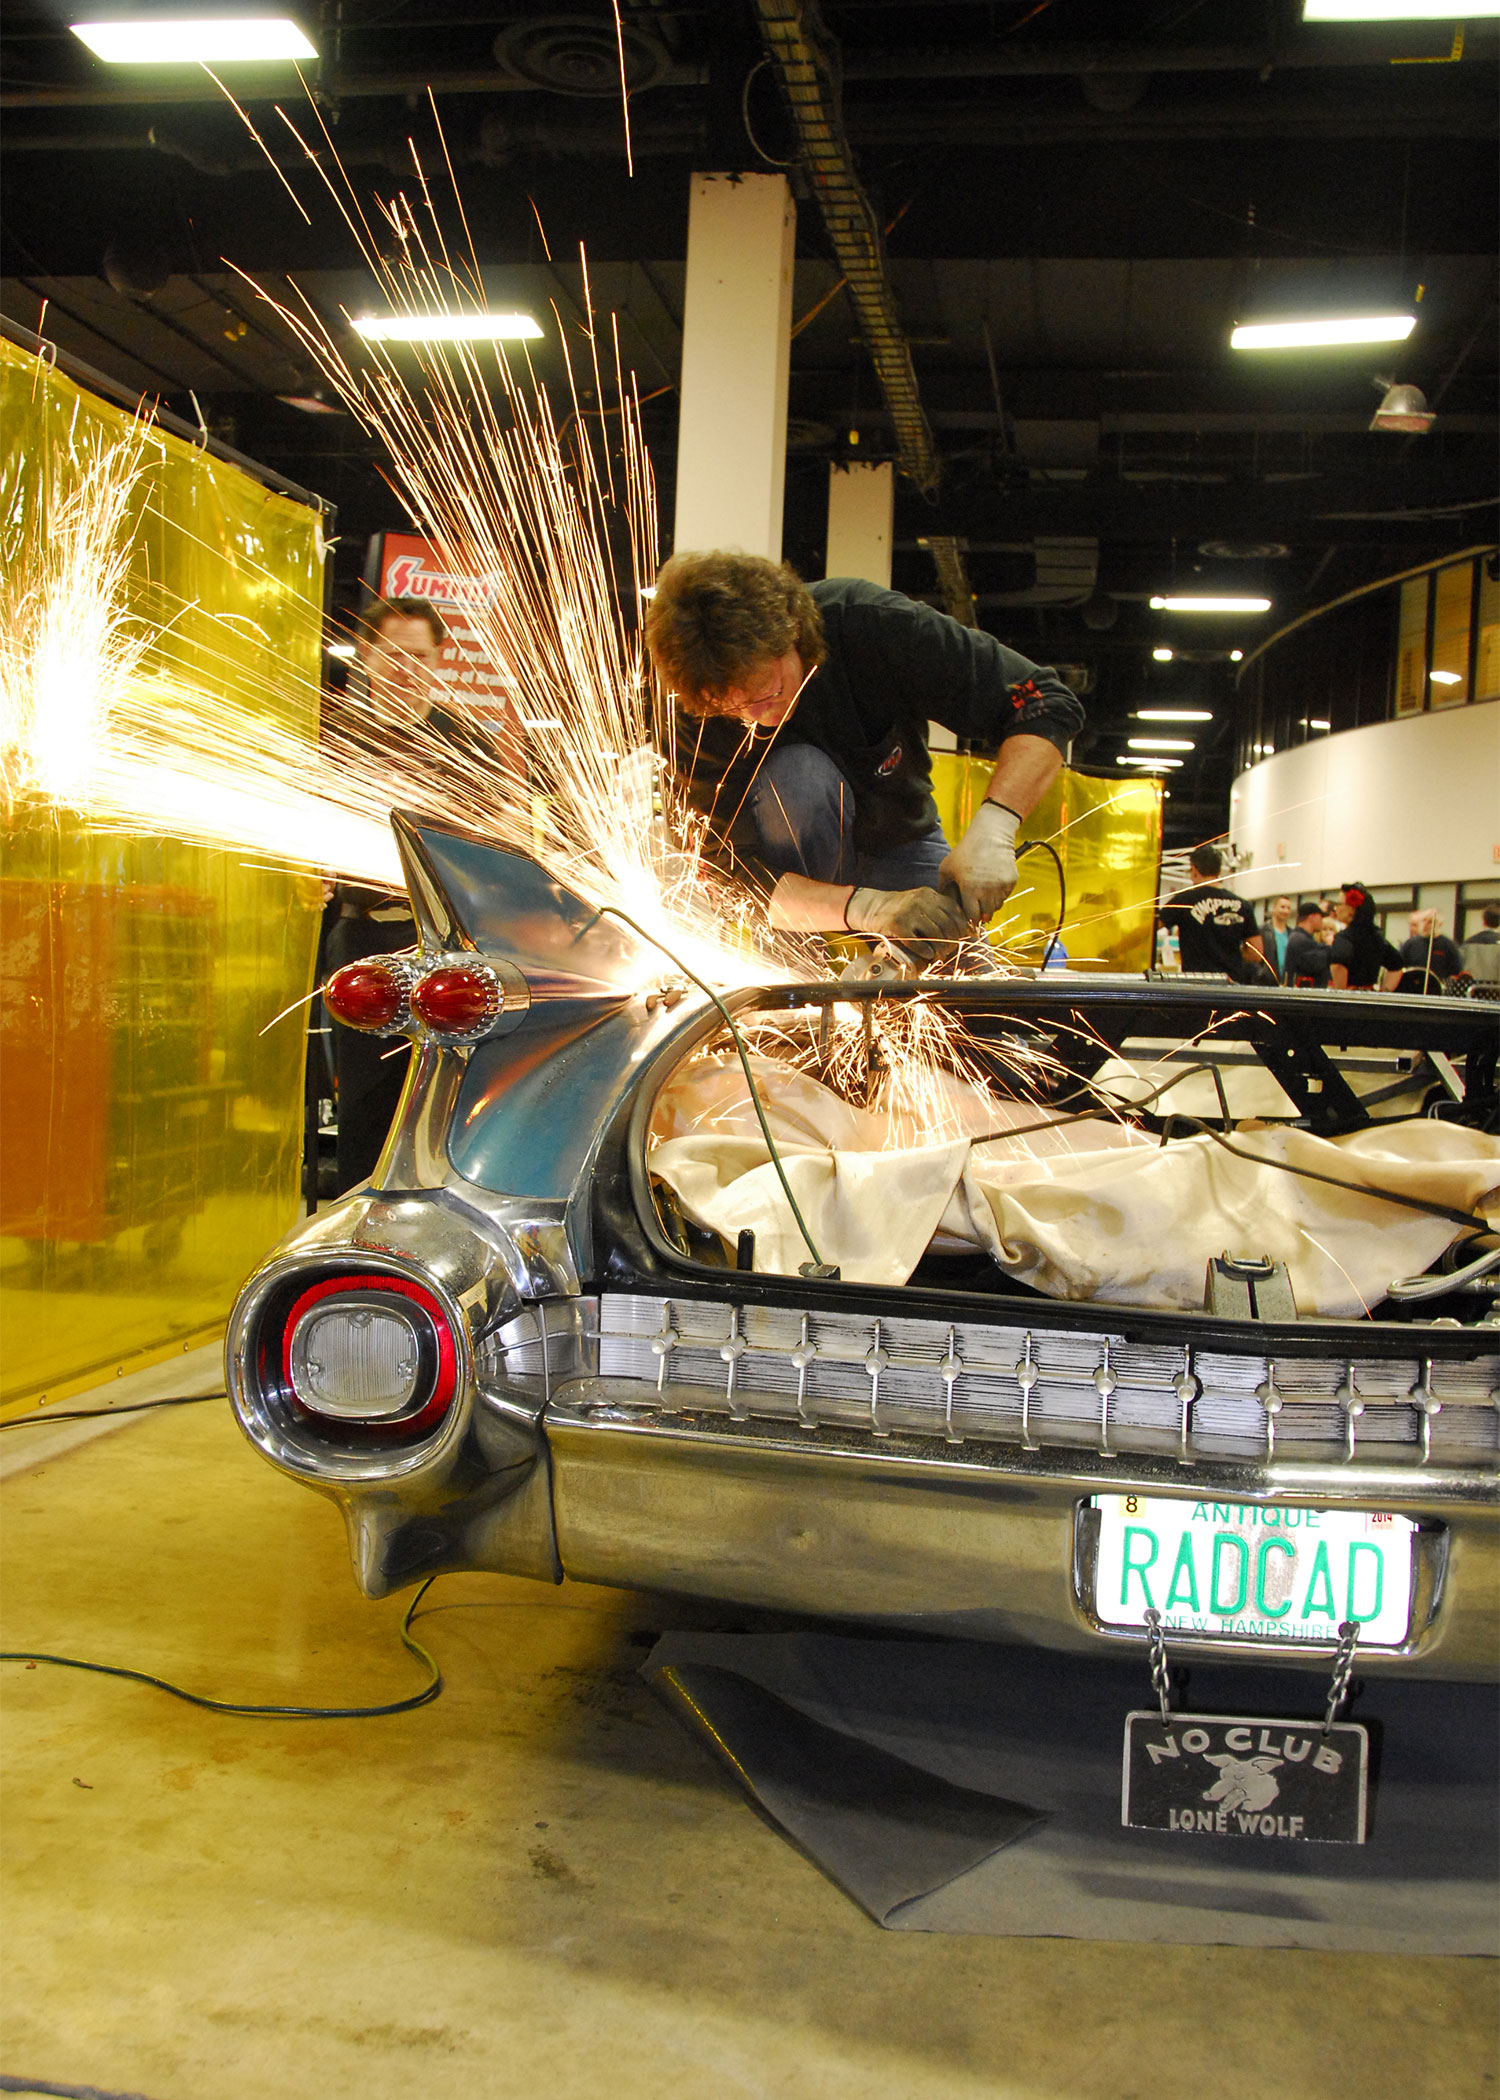 Sparks flew as the team worked to prepare the body for the lowered lid. Here you can see Winfield behind the scene monitoring the progress.